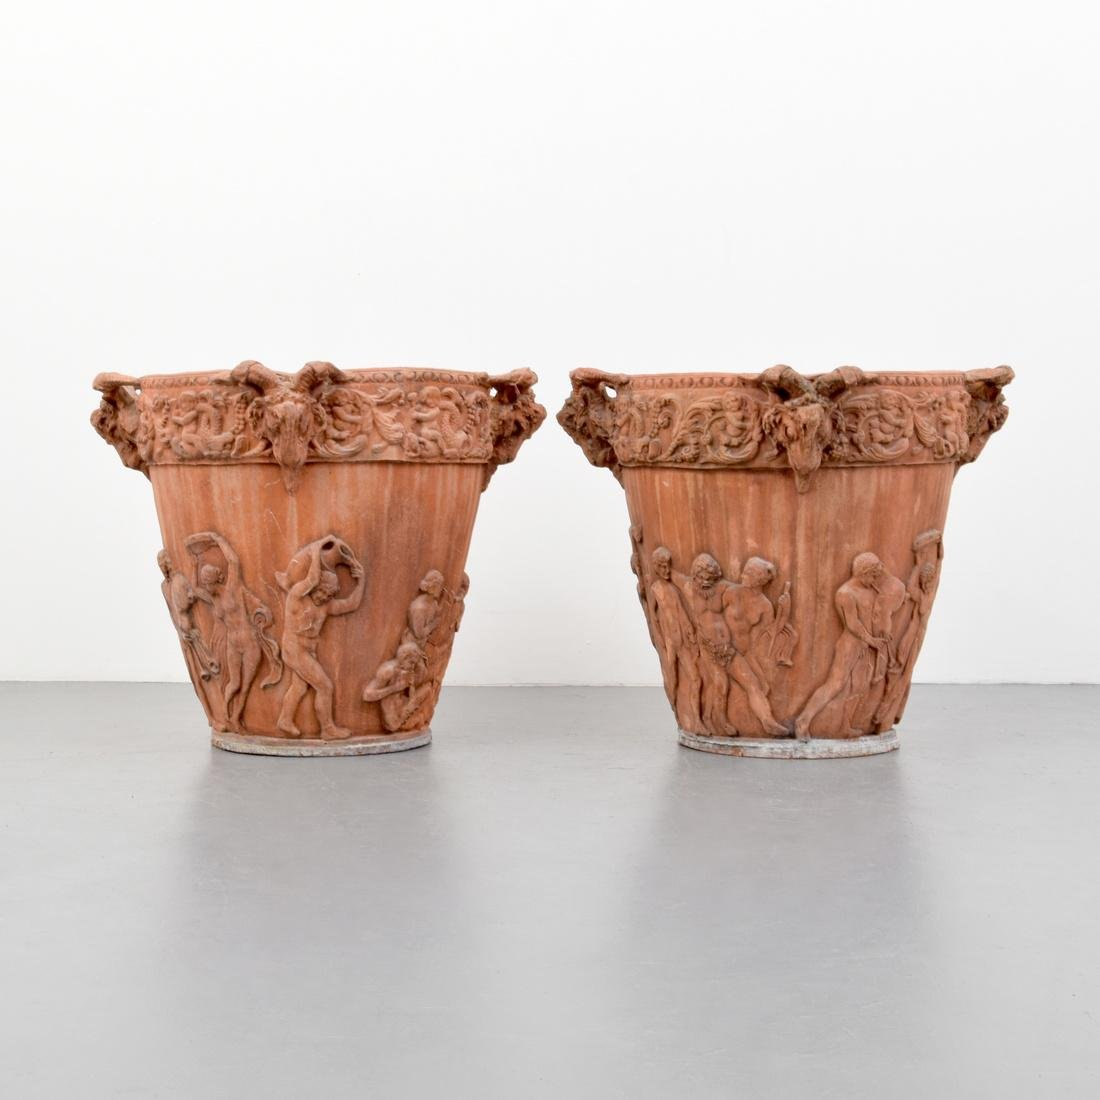 Pair of Large Classical Terracotta Urns/Planters